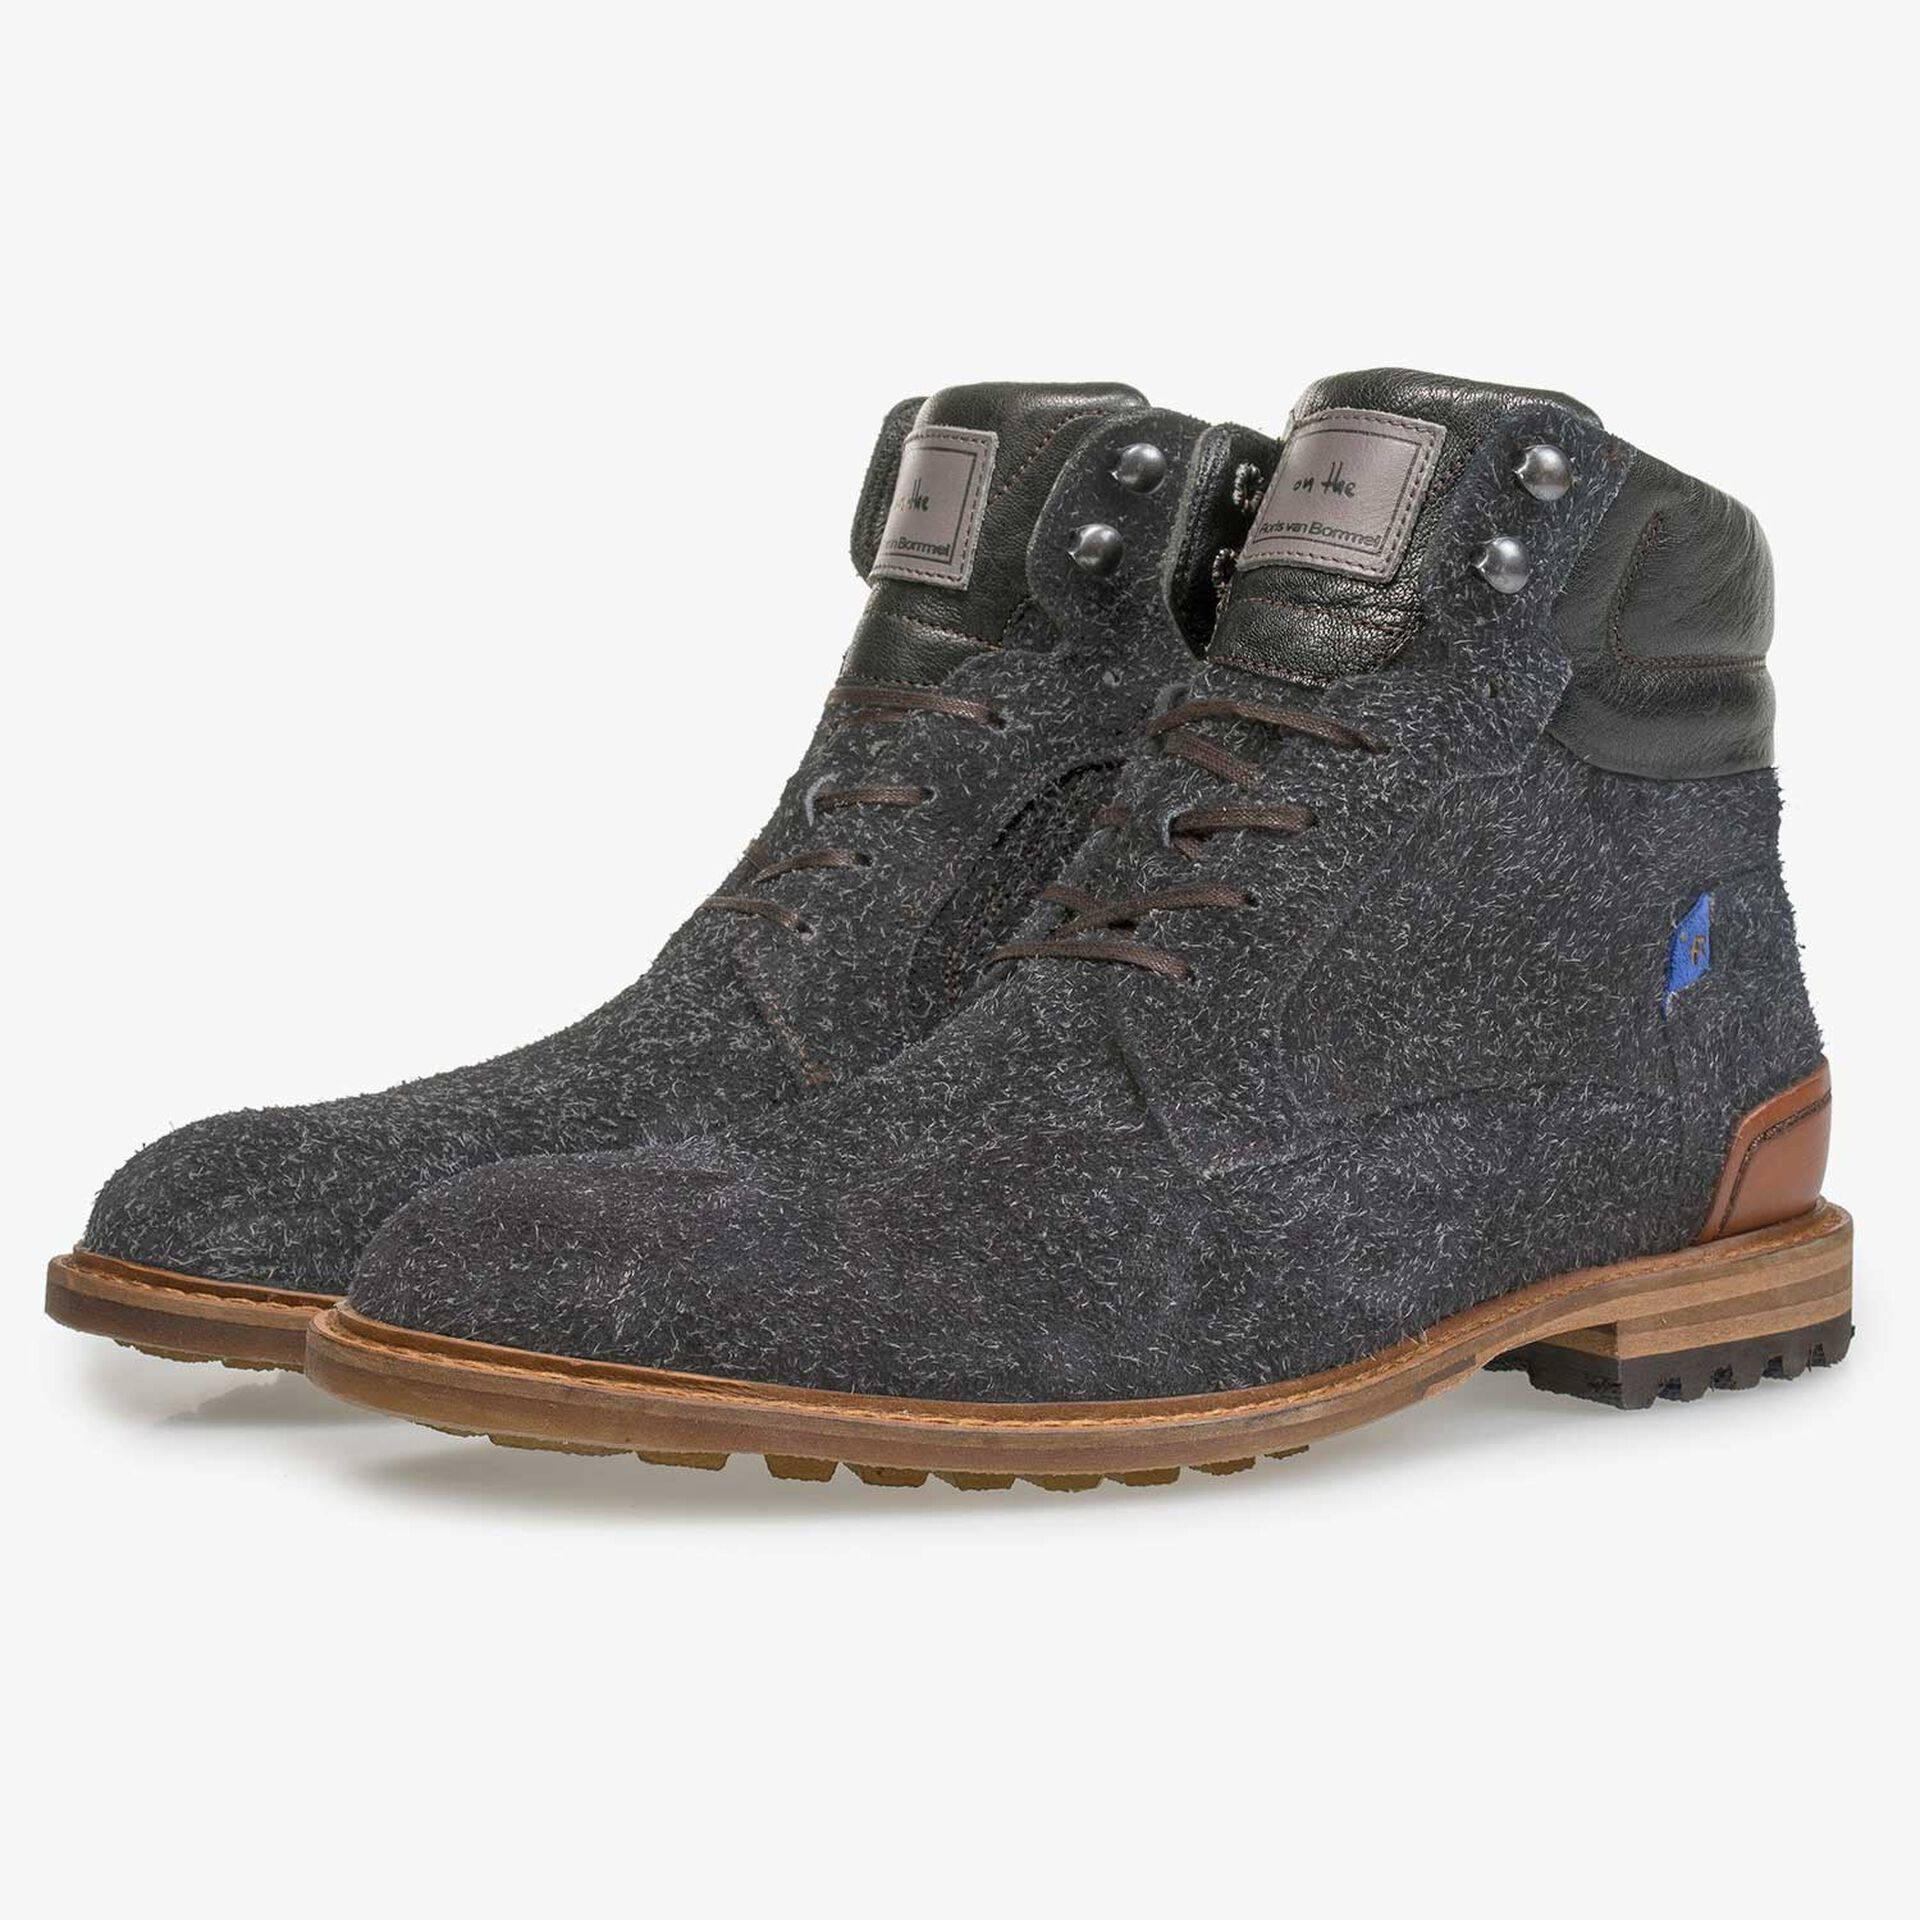 Dark grey rough-leather lace boot